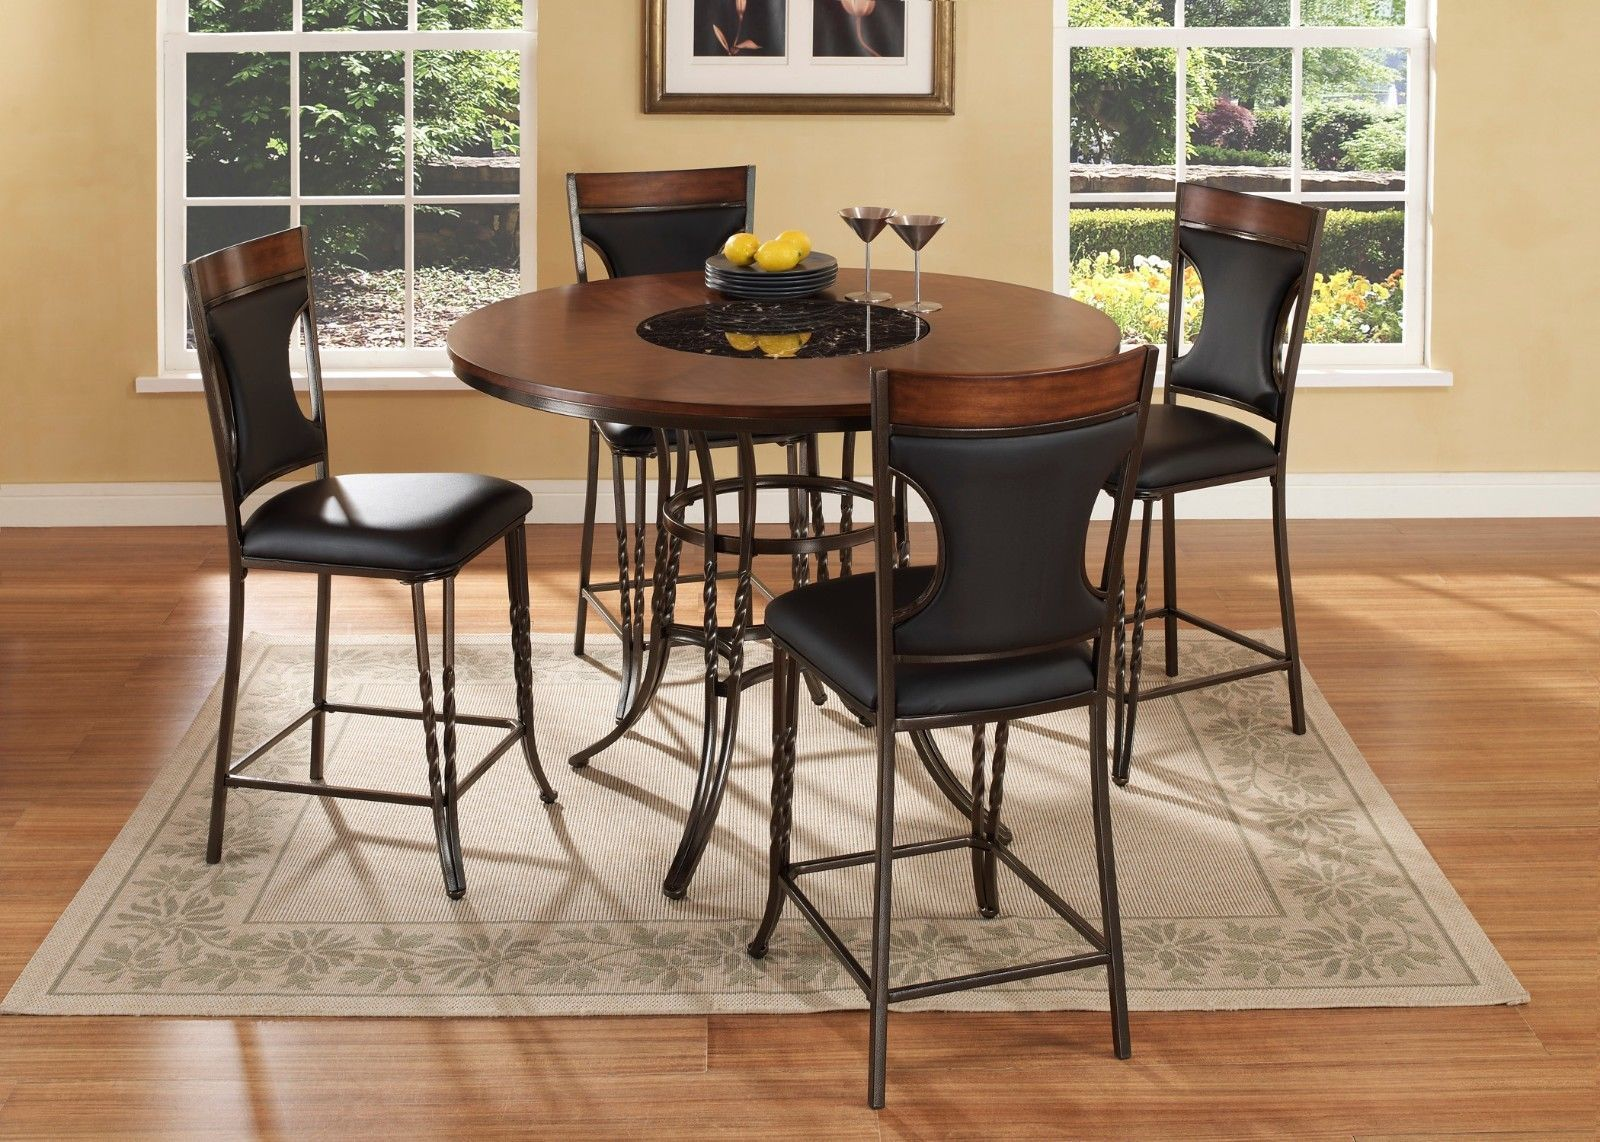 Mcferran DYNASTY Dining Room Table Chic Modern Style